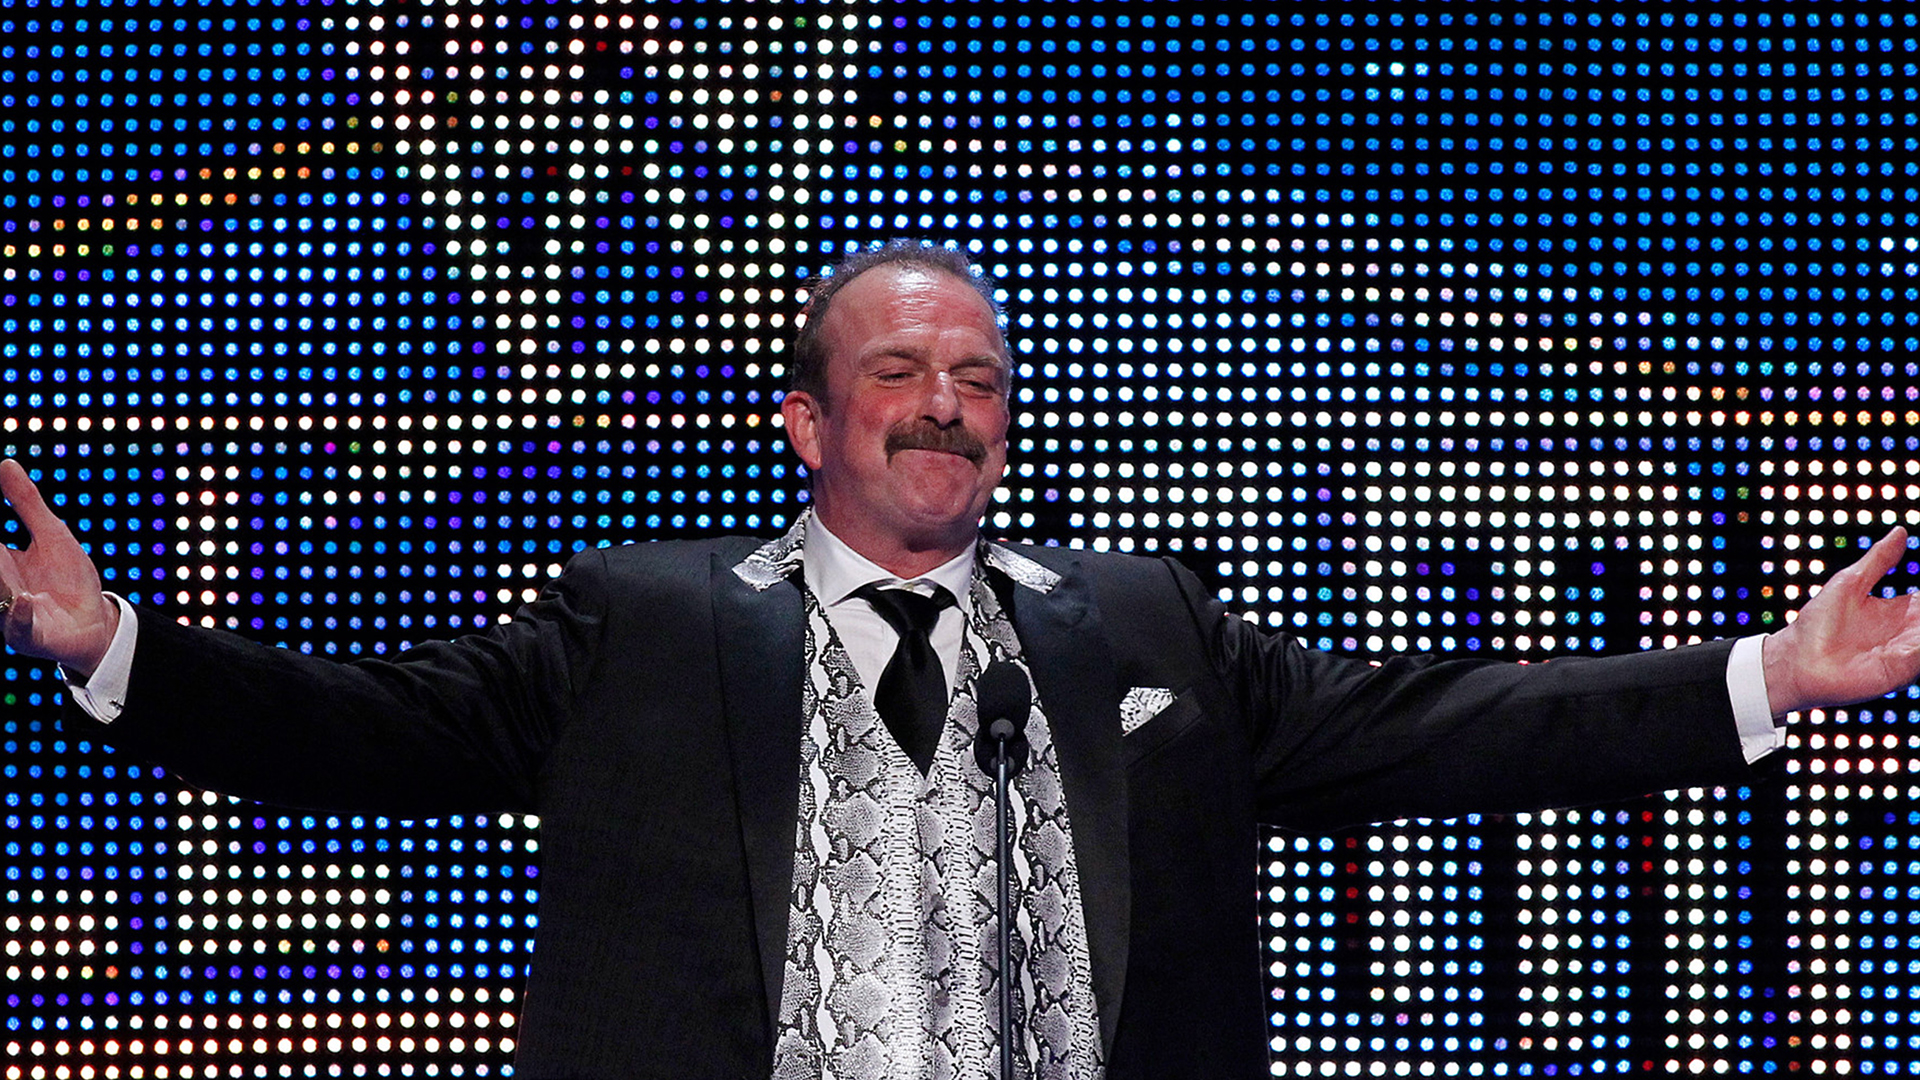 YC3 headliner Jake 'The Snake' Roberts: 'Wrestling didn't make me do drugs. I did drugs because I wanted to'